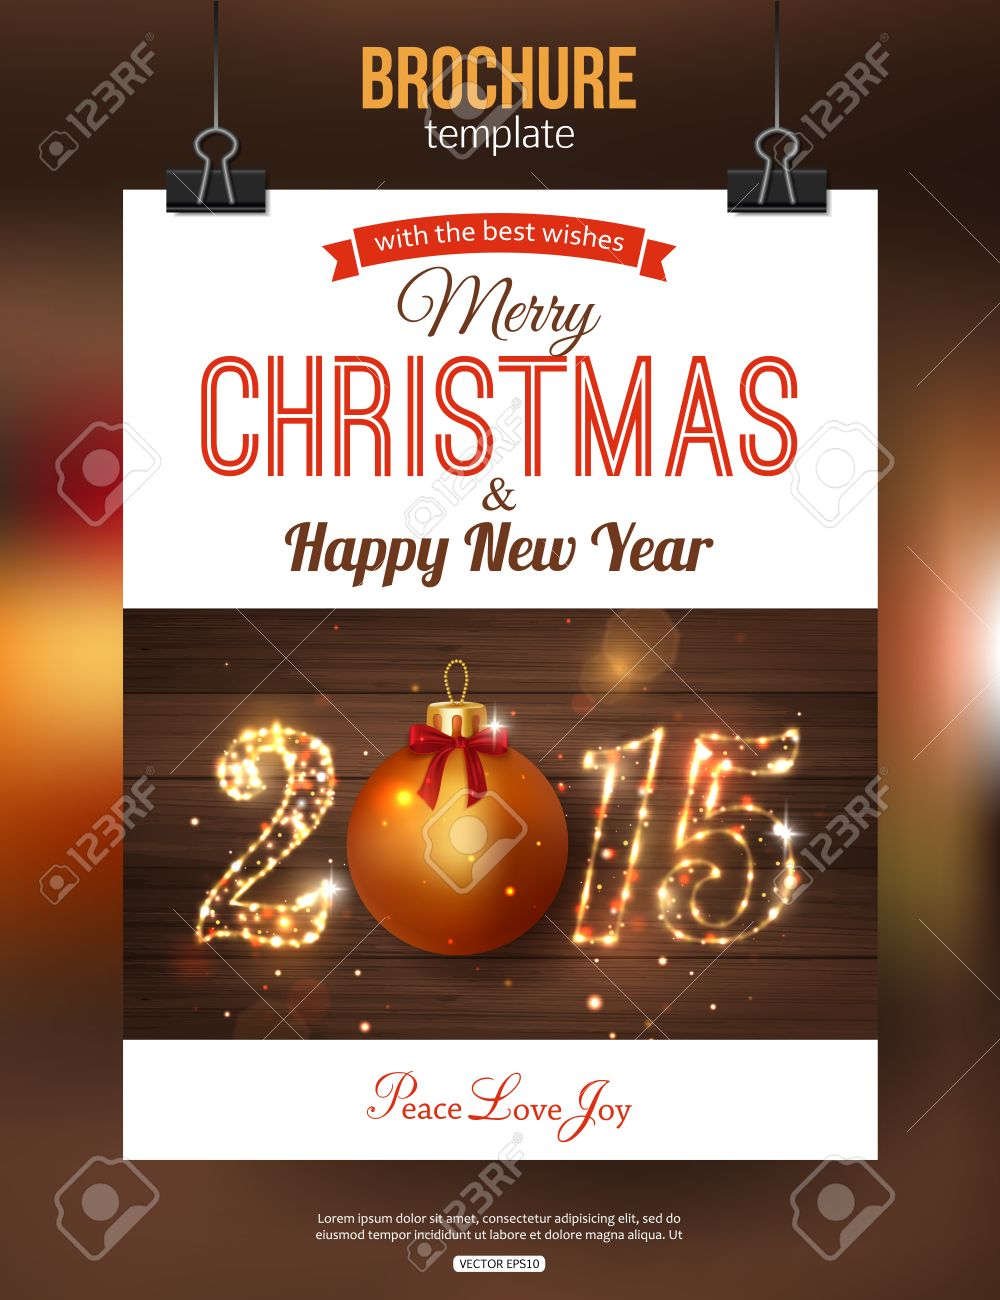 Christmas Brochure Template Abstract Typographical Flyer Design